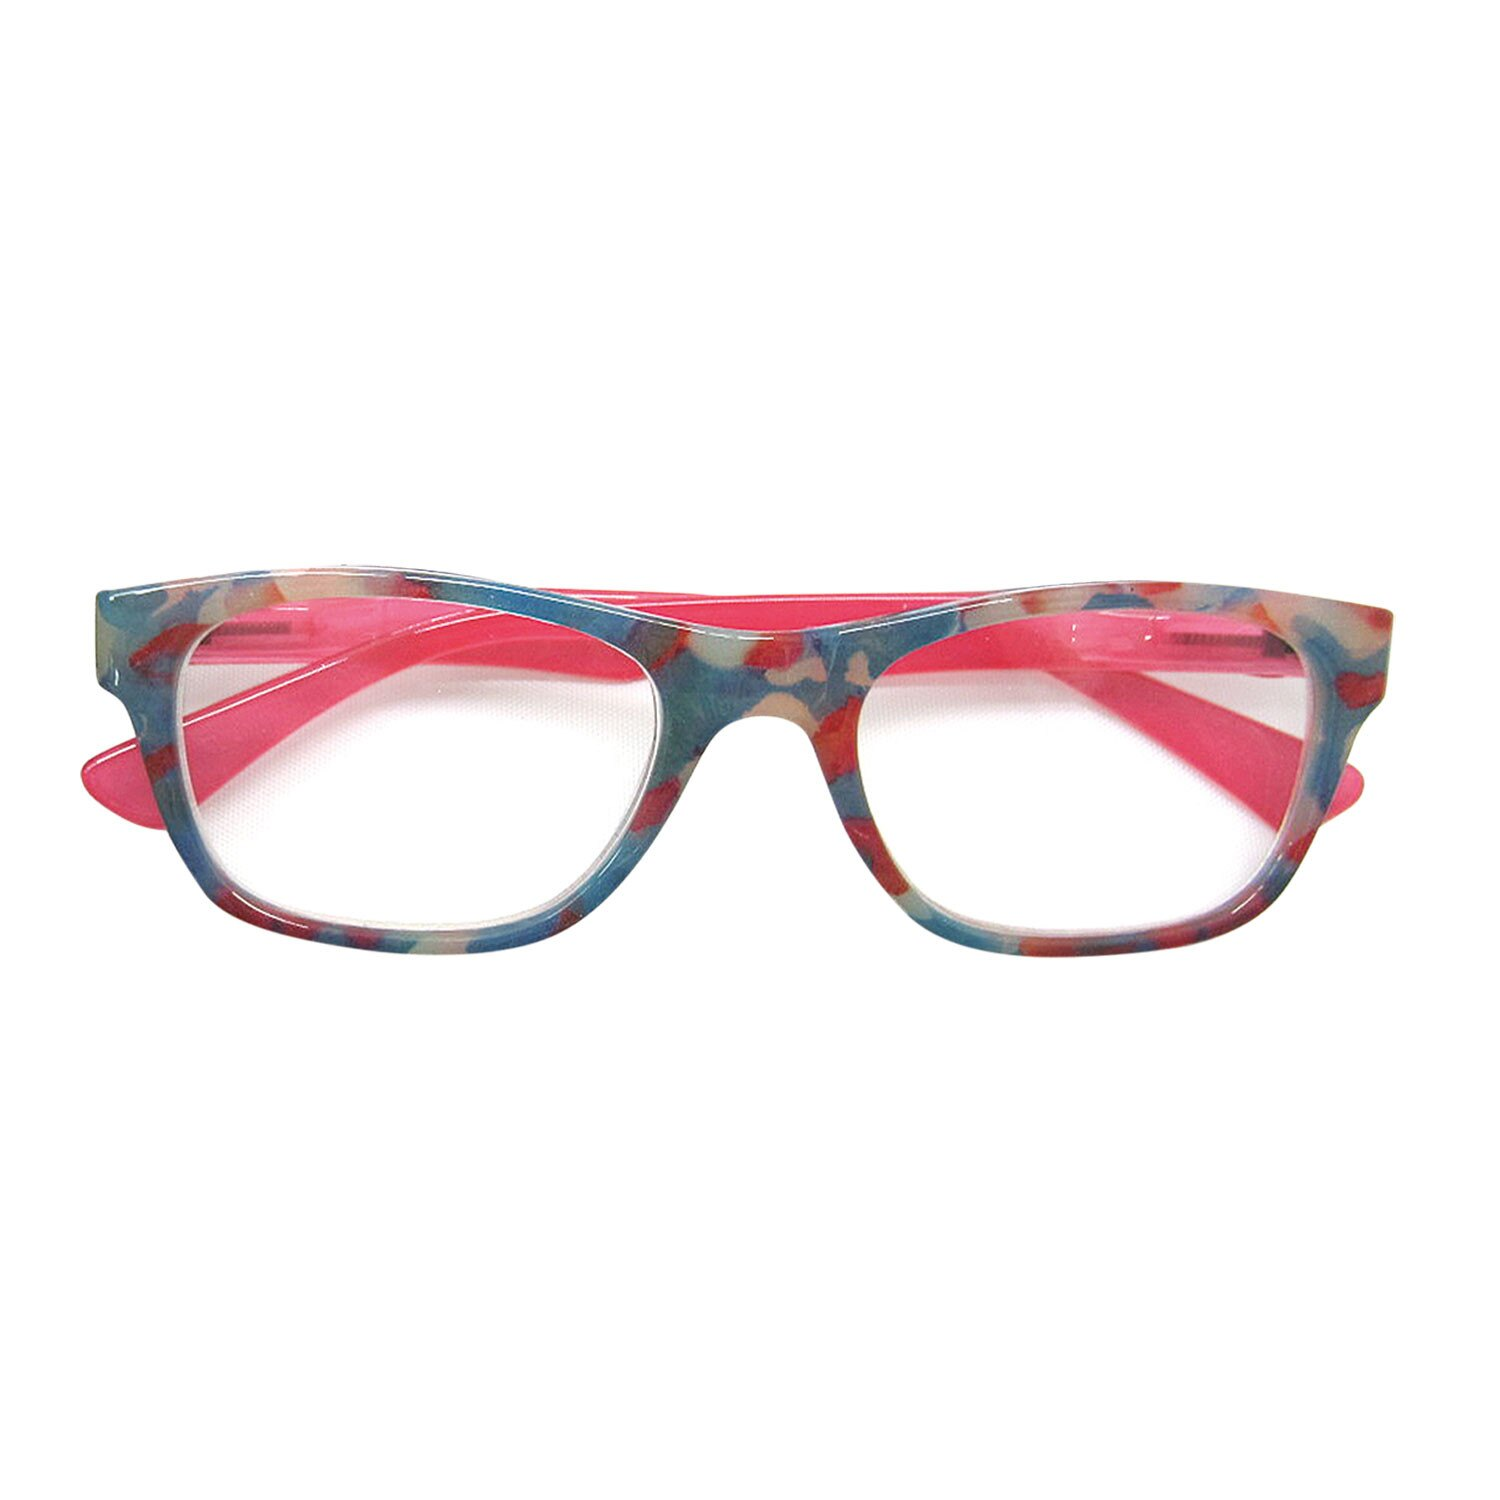 75458ff38660 Cougar Sunglasses Women s Camouflage Print Readers - Fashion Reading Glasses  - Pink - +6.00 0